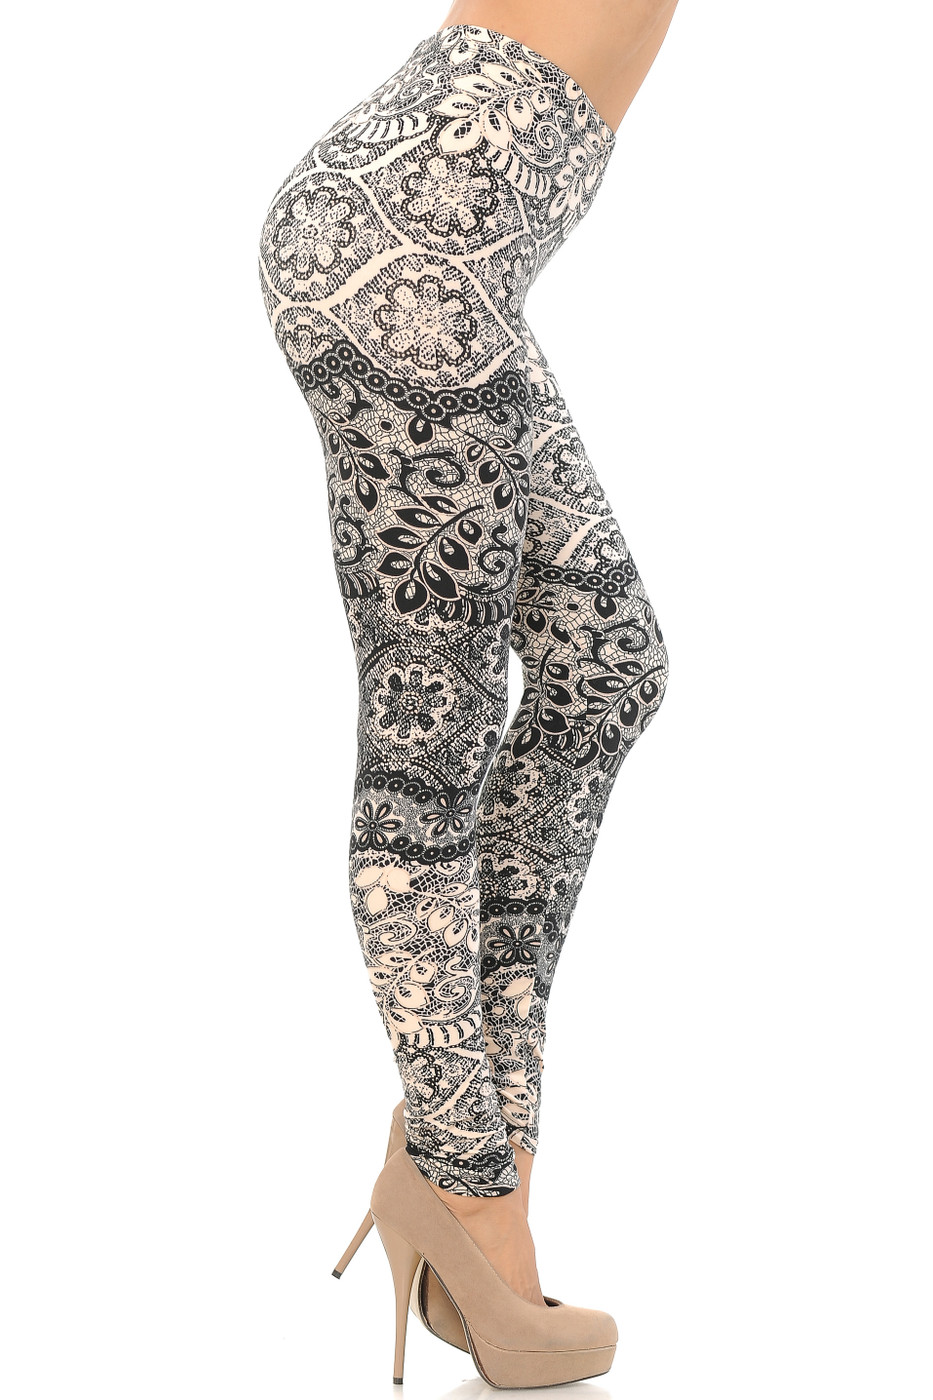 Buttery Soft Buttery Soft Cream Leaf Leggings - Extra Plus Size - 3X-5XHoliday Leaf Leggings - Extra Plus Size - 3X-5X